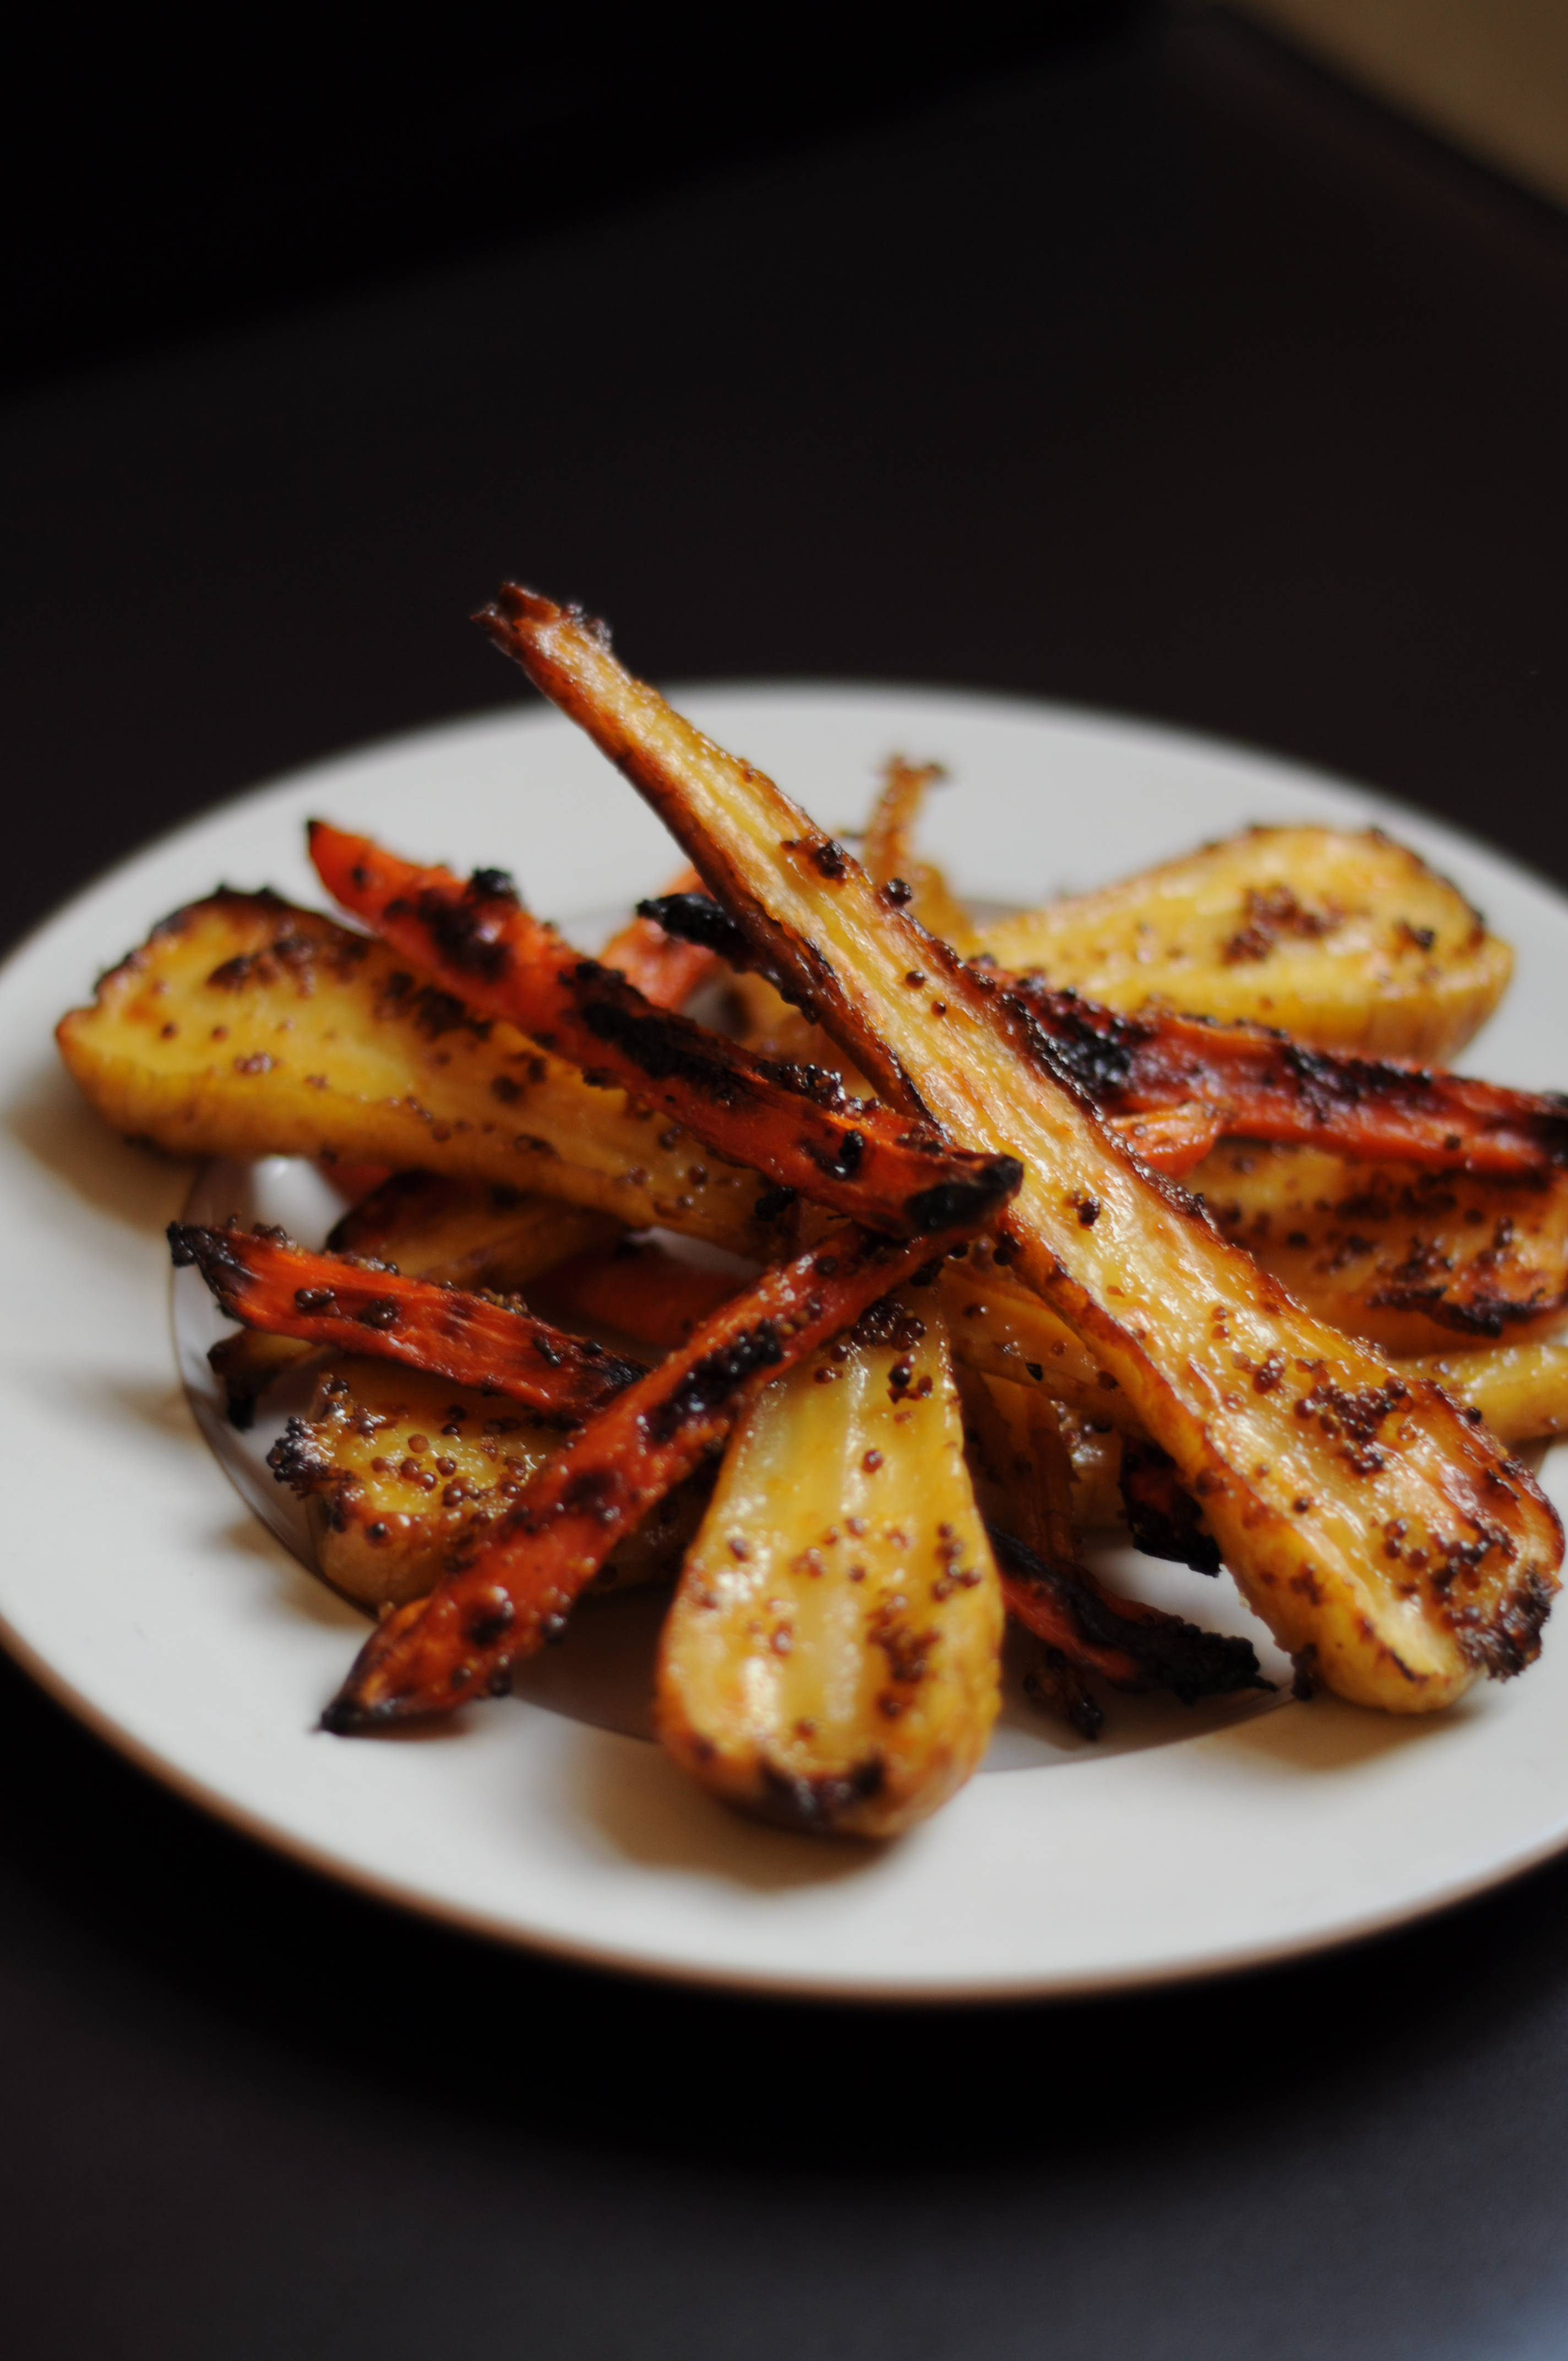 Candied Honey Mustard Parsnips and Carrots – Feta & Arepa